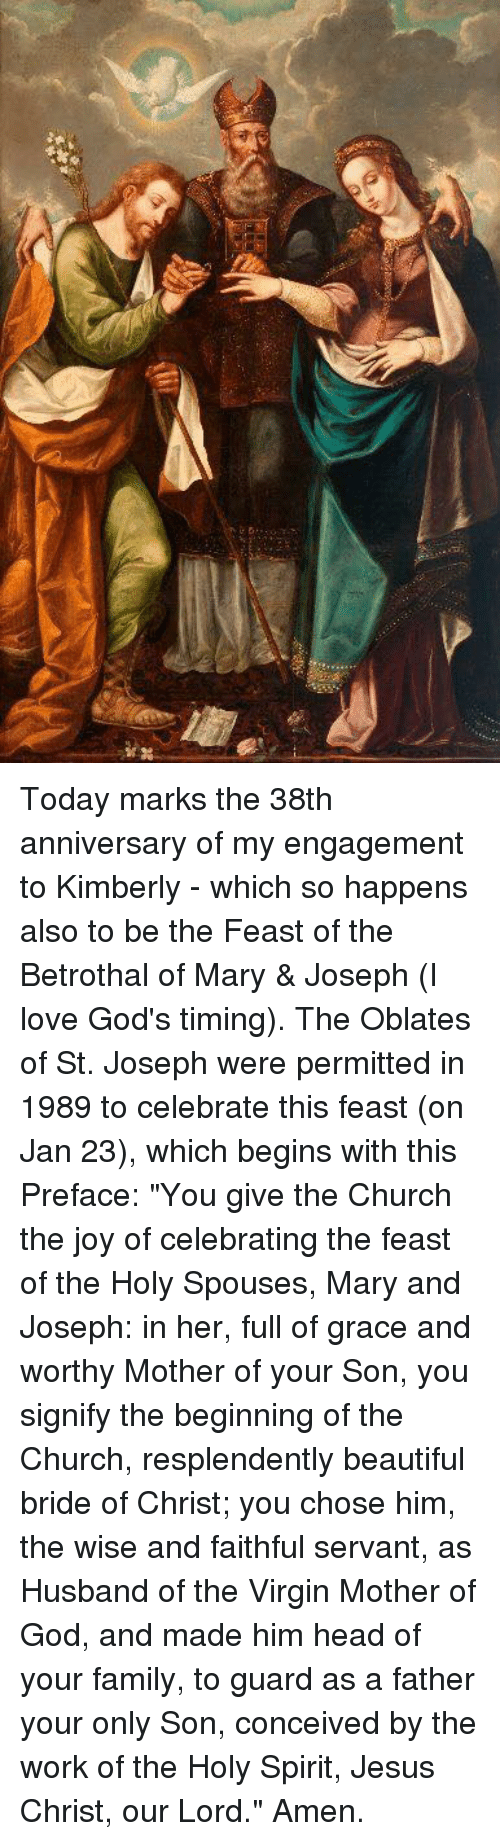 """Memes, Virgin, and Virginity: Today marks the 38th anniversary of my engagement to Kimberly - which so happens also to be the Feast of the Betrothal of Mary & Joseph (I love God's timing).    The Oblates of St. Joseph were permitted in 1989 to celebrate this feast (on Jan 23), which begins with this Preface:  """"You give the Church the joy of celebrating the feast of the Holy Spouses, Mary and Joseph: in her, full of grace and worthy Mother of your Son, you signify the beginning of the Church, resplendently beautiful bride of Christ; you chose him, the wise and faithful servant, as Husband of the Virgin Mother of God, and made him head of your family, to guard as a father your only Son, conceived by the work of the Holy Spirit, Jesus Christ, our Lord."""" Amen."""